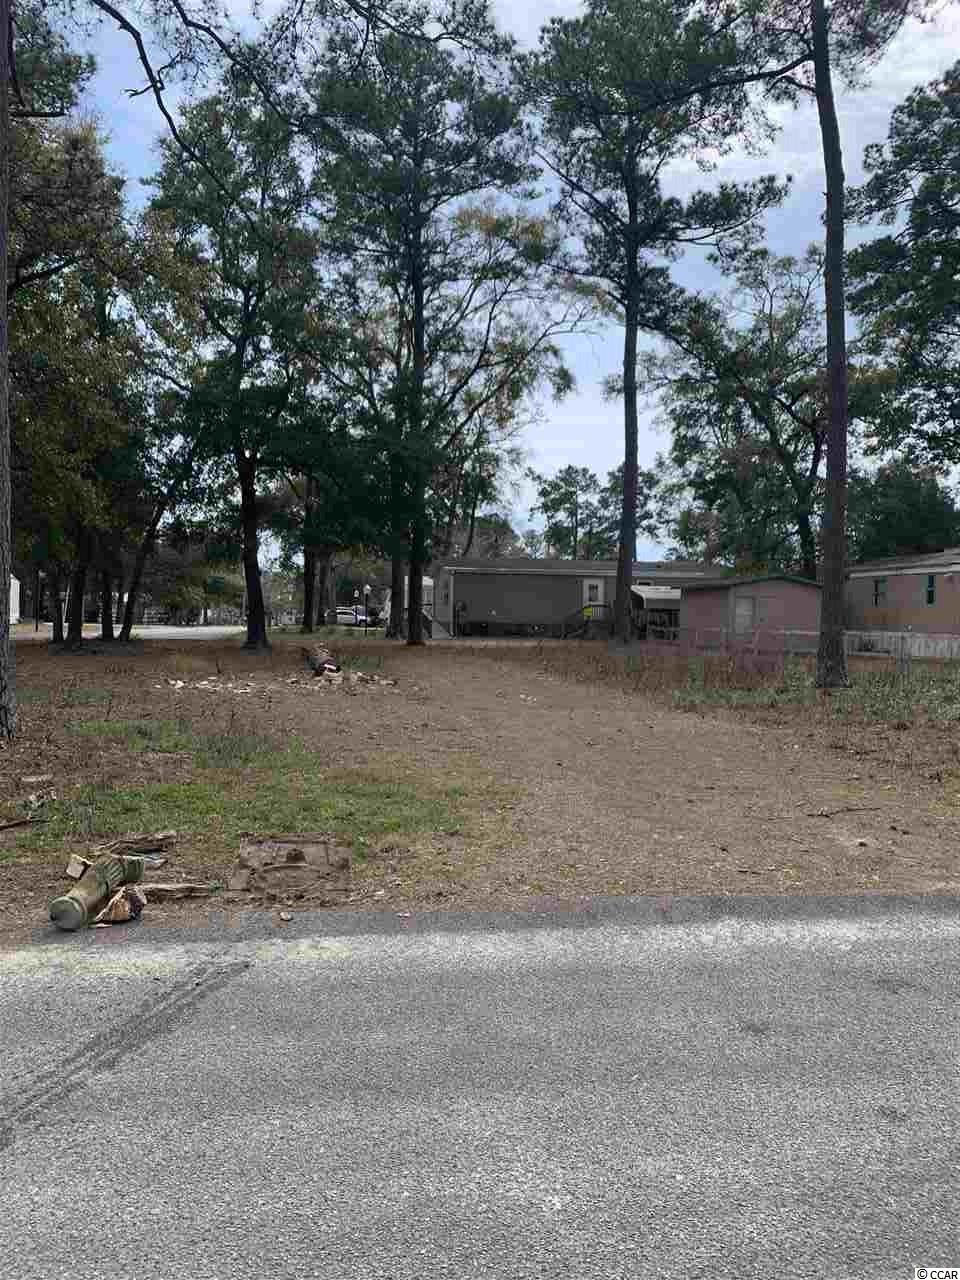 Nice lot in the Grove for Single wide, Doublewide, Modular or Stick built. Just a short golf cart ride away from The Cherry Grove Beach, Grocery store, Restaurants, Shopping centers and more. 3 blocks away from the ICW.